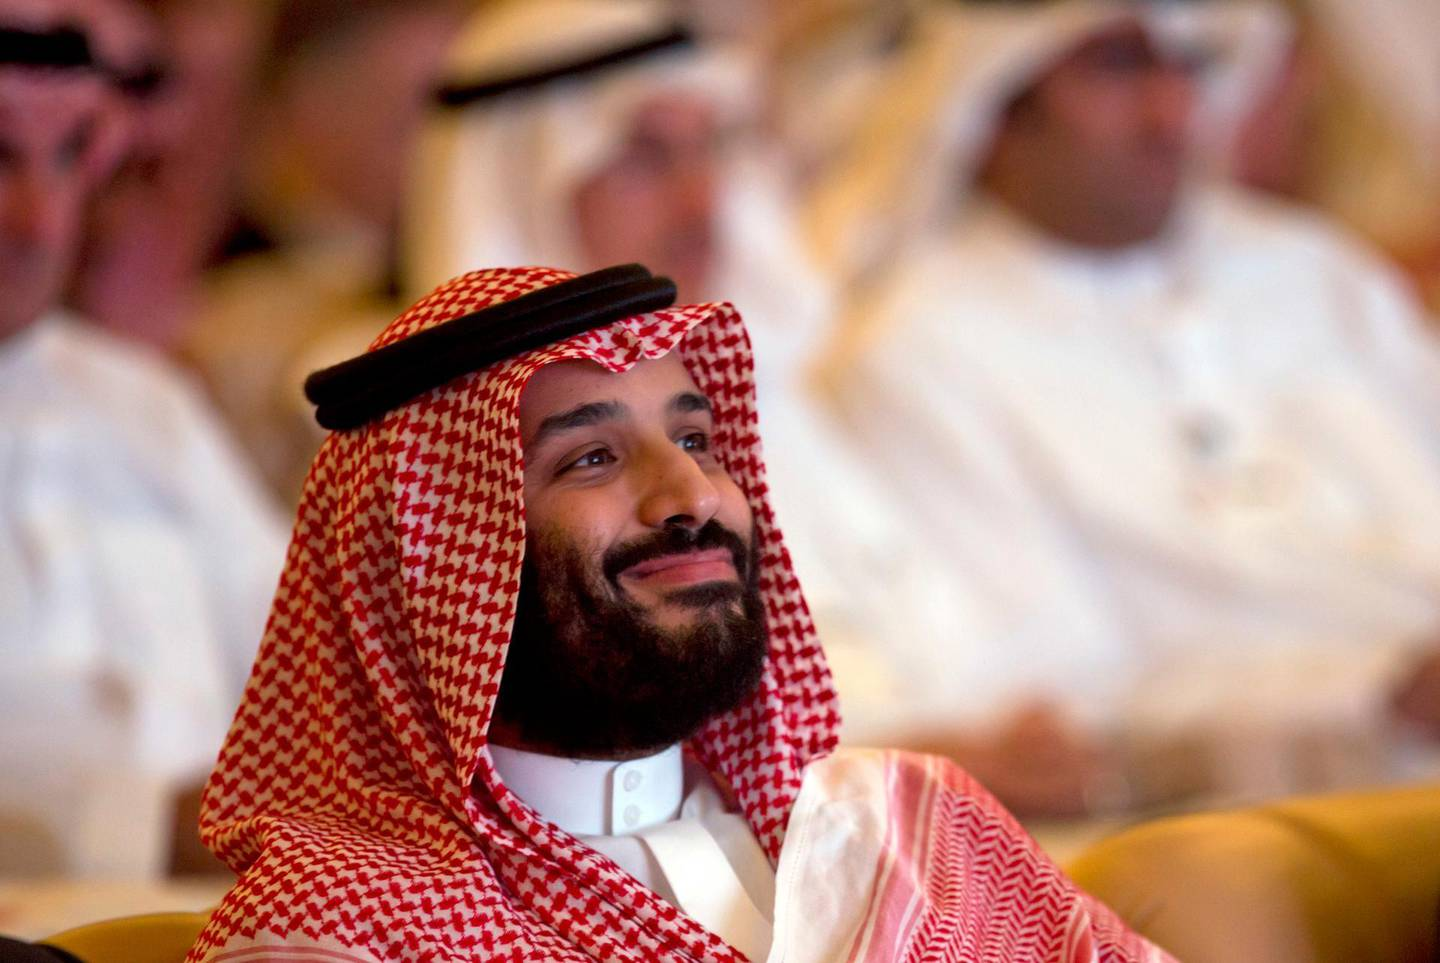 FILE - In this Oct. 23, 2018, file photo, Saudi Crown Prince Mohammed bin Salman smiles as he attends the Future Investment Initiative summit in Riyadh, Saudi Arabia. Lured by a long-looming stock offering of Saudi Arabia's massive state-run oil company, investors and business leaders have returned to the kingdom's capital for an investment forum overshadowed last year by the assassination of Washington Post columnist Jamal Khashoggi. (AP Photo/Amr Nabil, File)